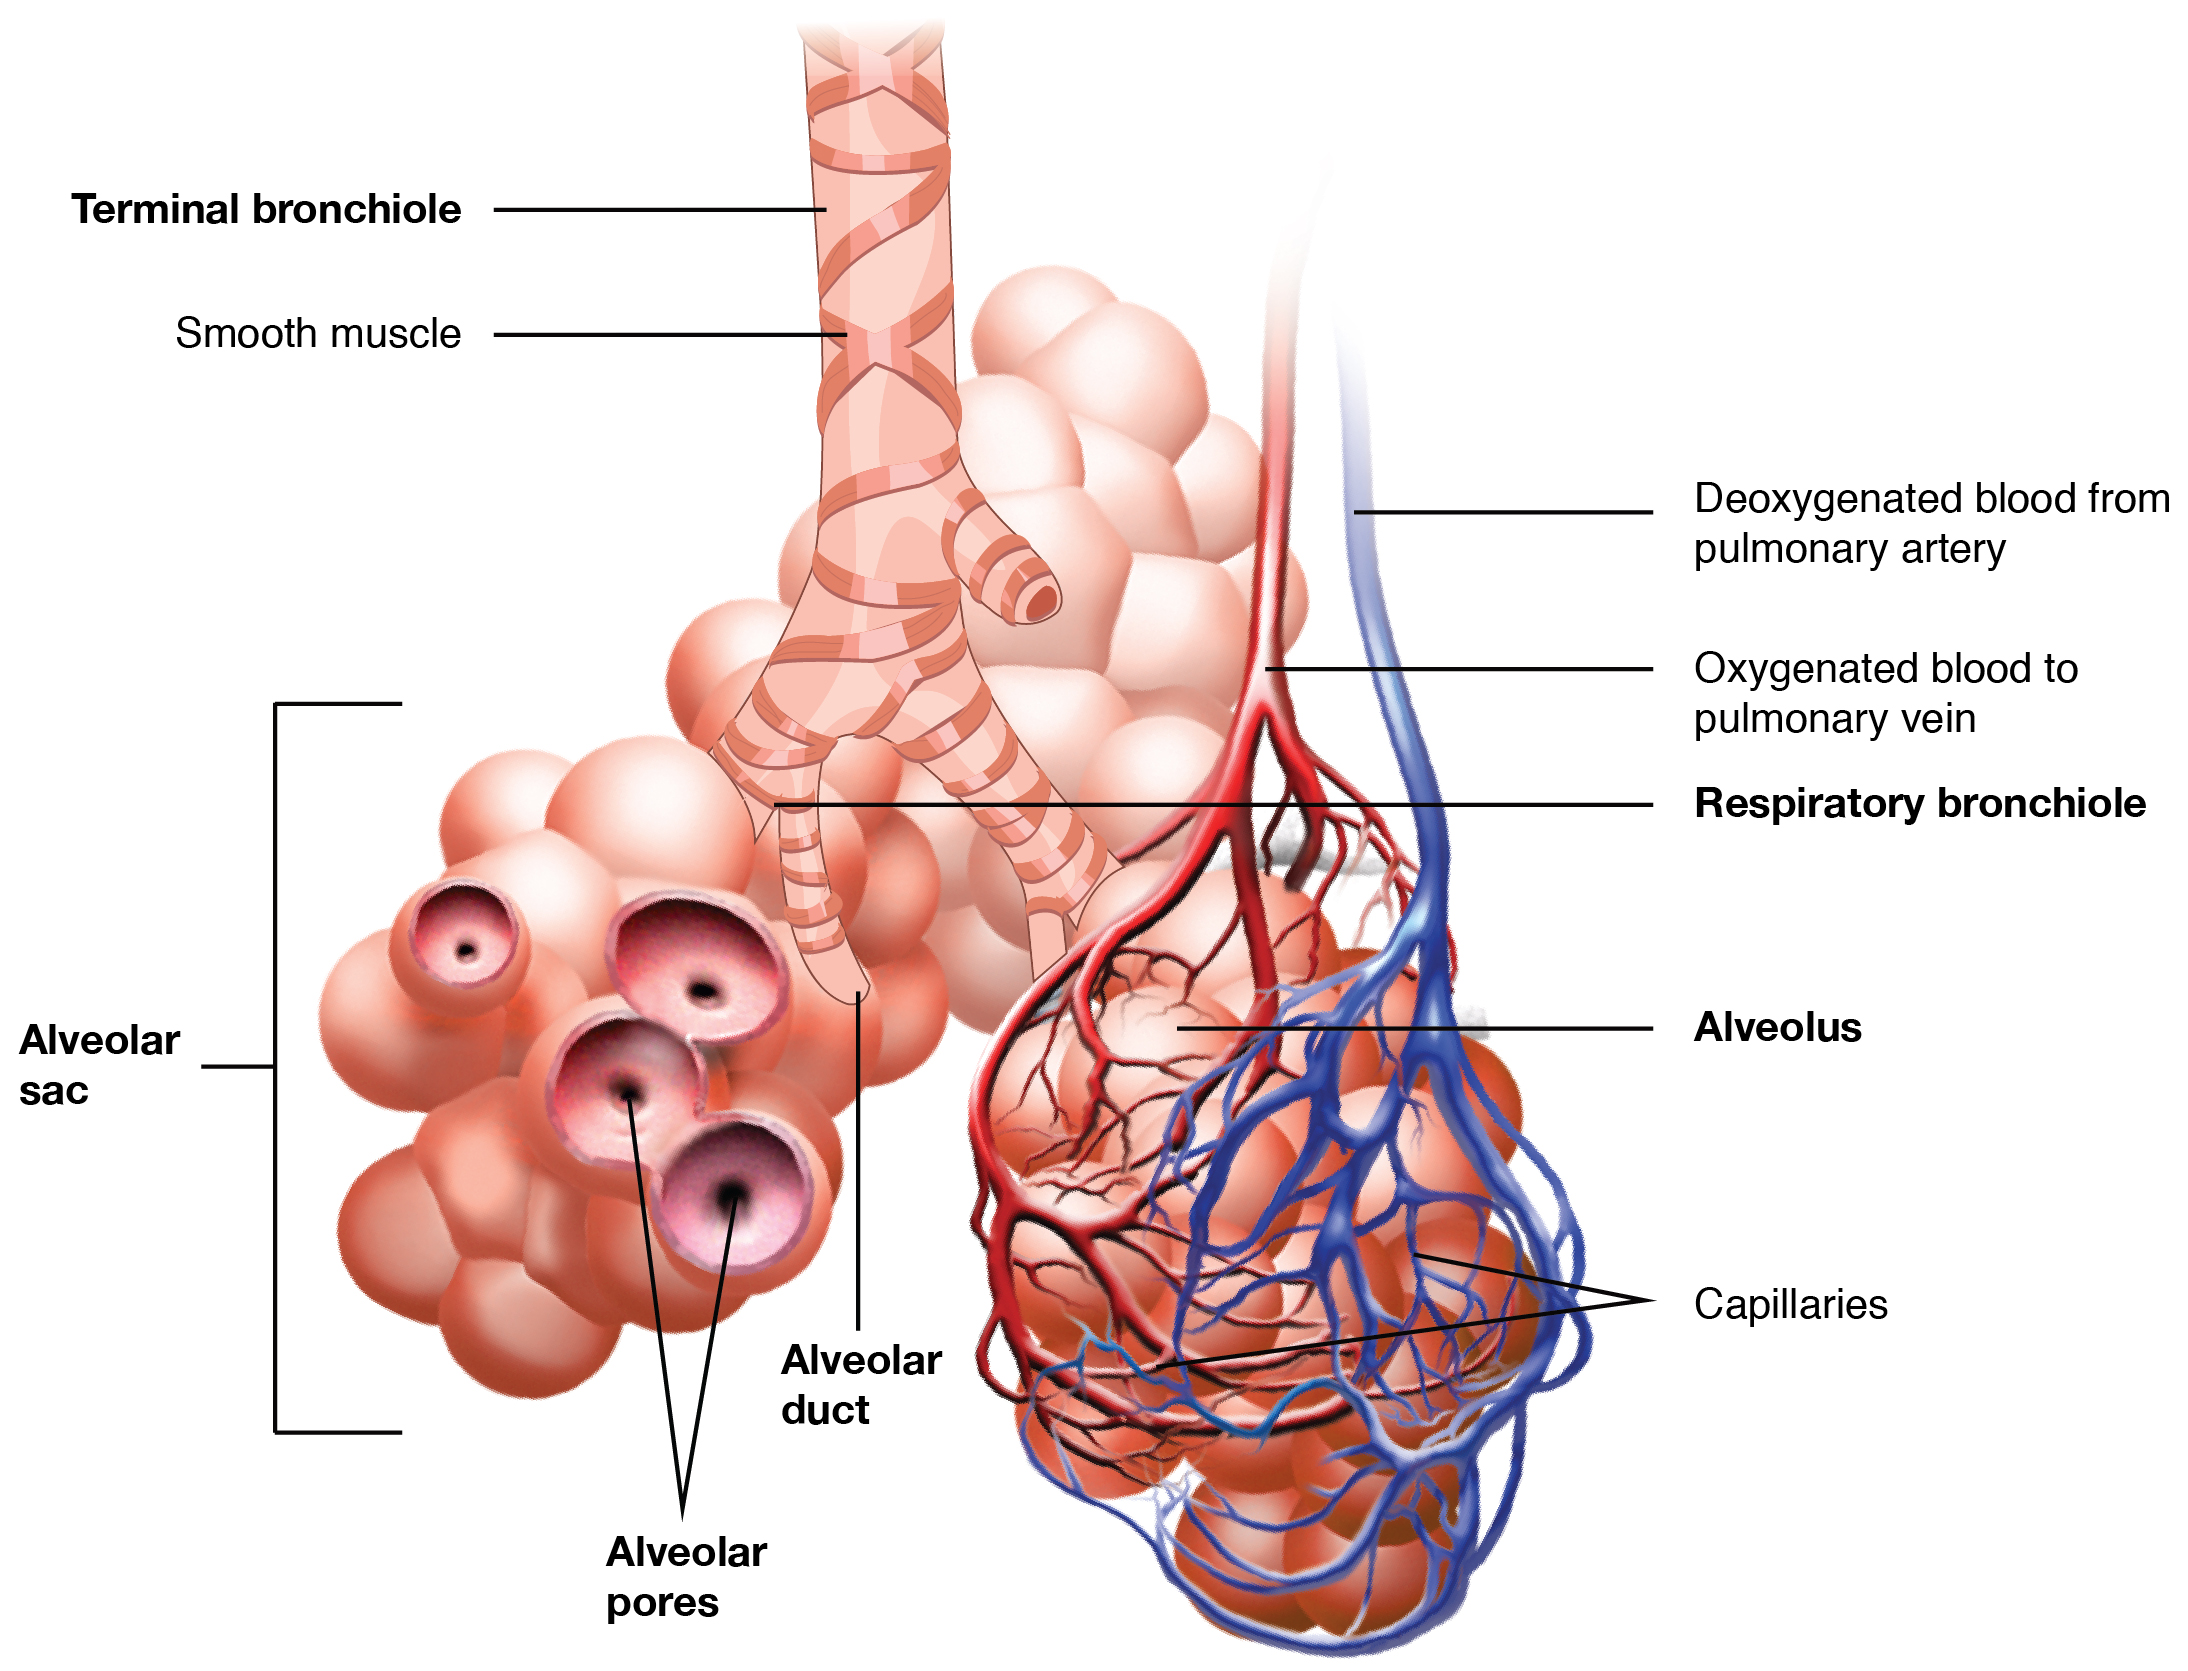 22.1 Organs and Structures of the Respiratory System – Anatomy and ...